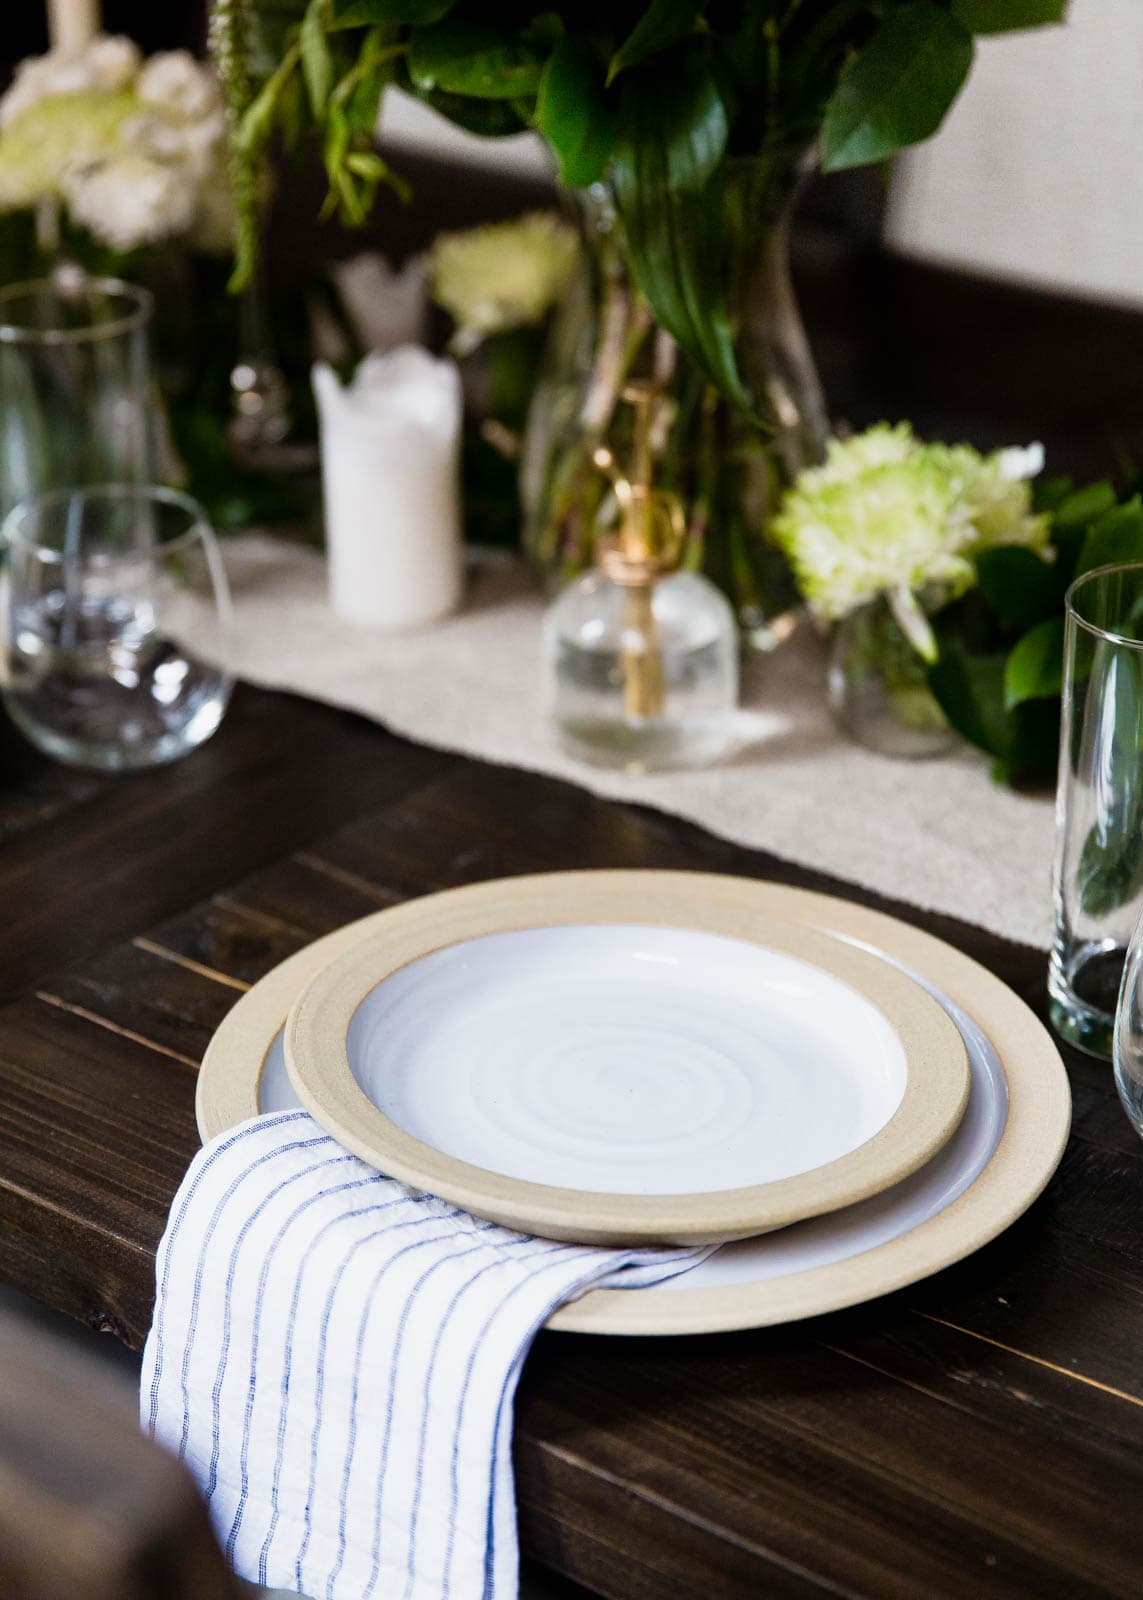 Farmhouse Pottery Plates <3